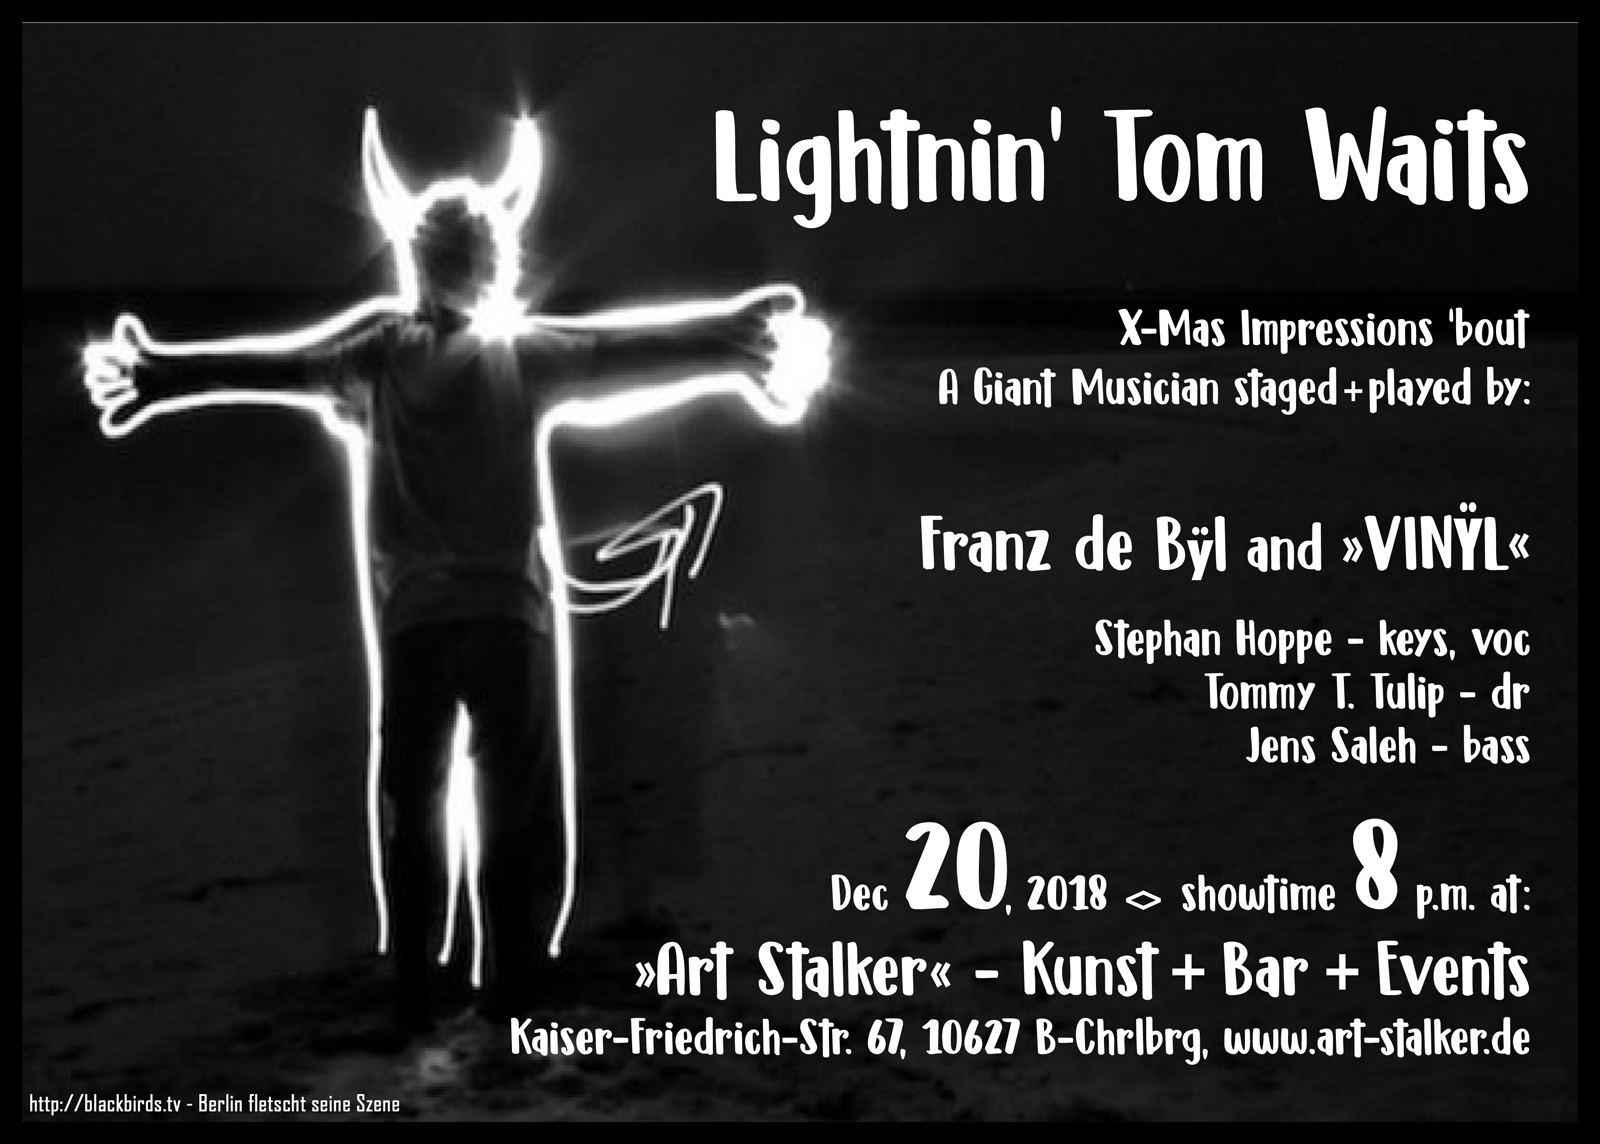 Lightnin' Tom Waits - Franz de Bÿl & Vinÿl 20.12.2018 at Art Stalkers, Berlin